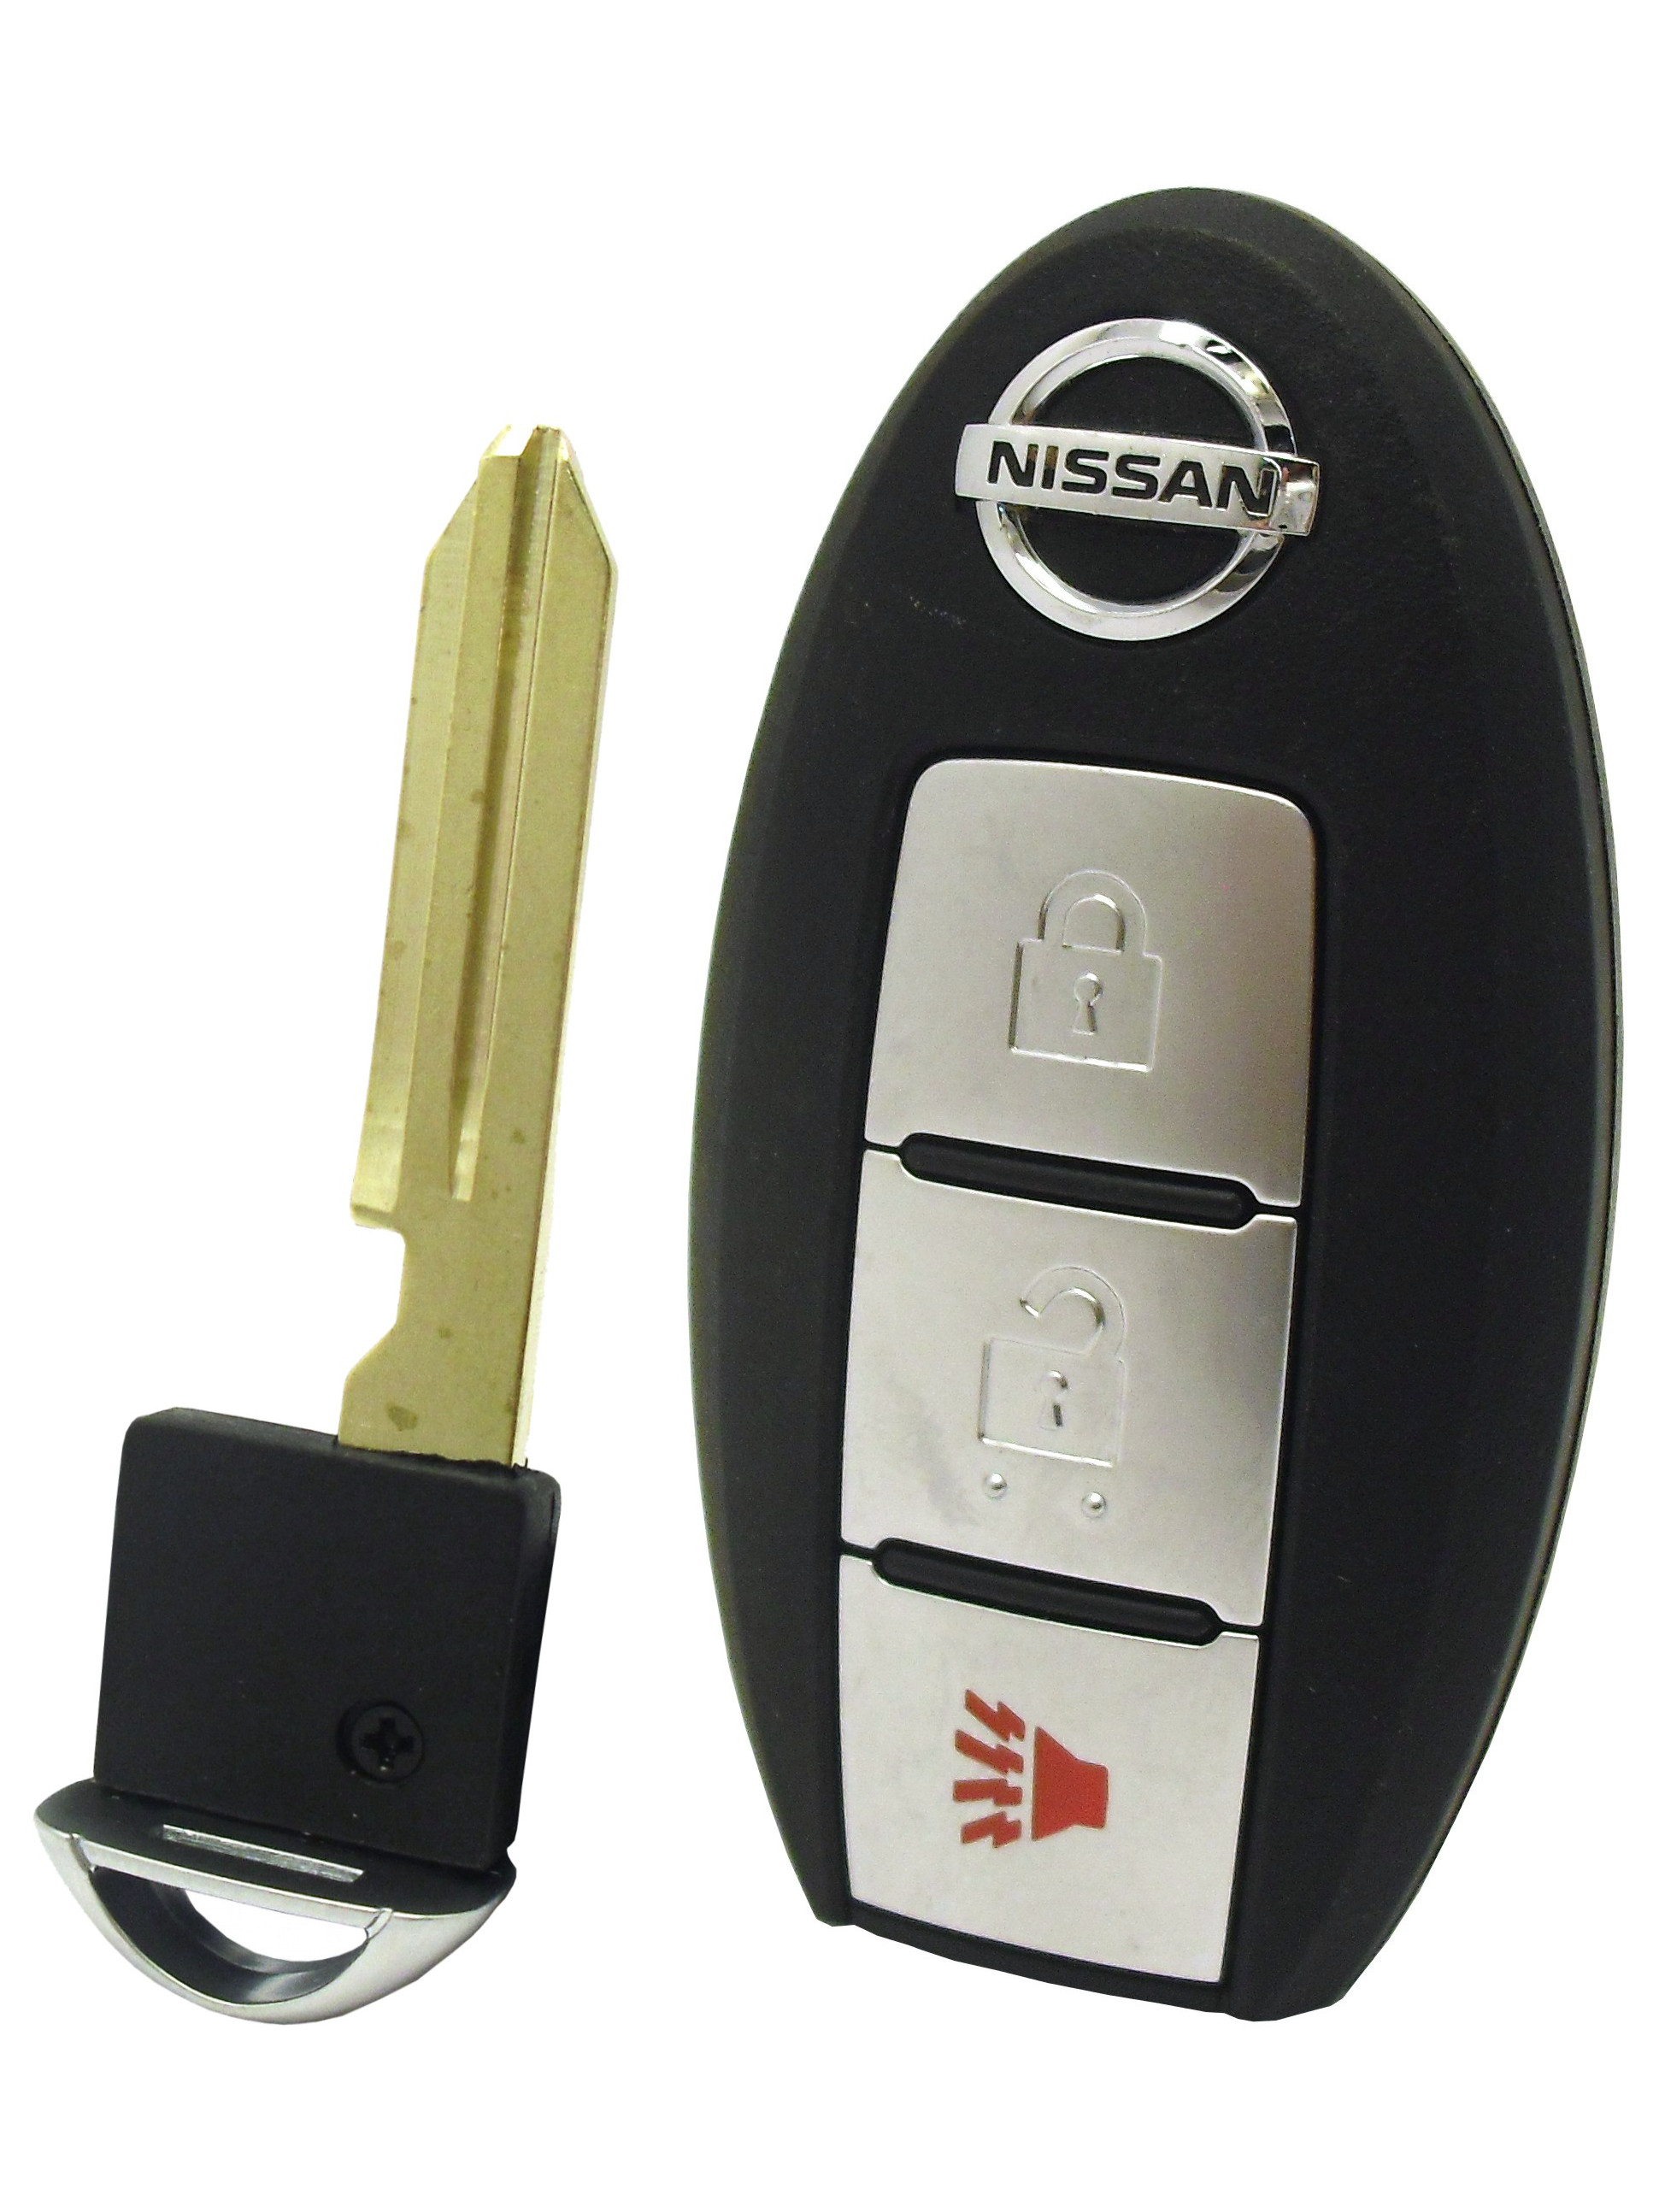 Nissan Remote Entry Smart Key - 3 Button